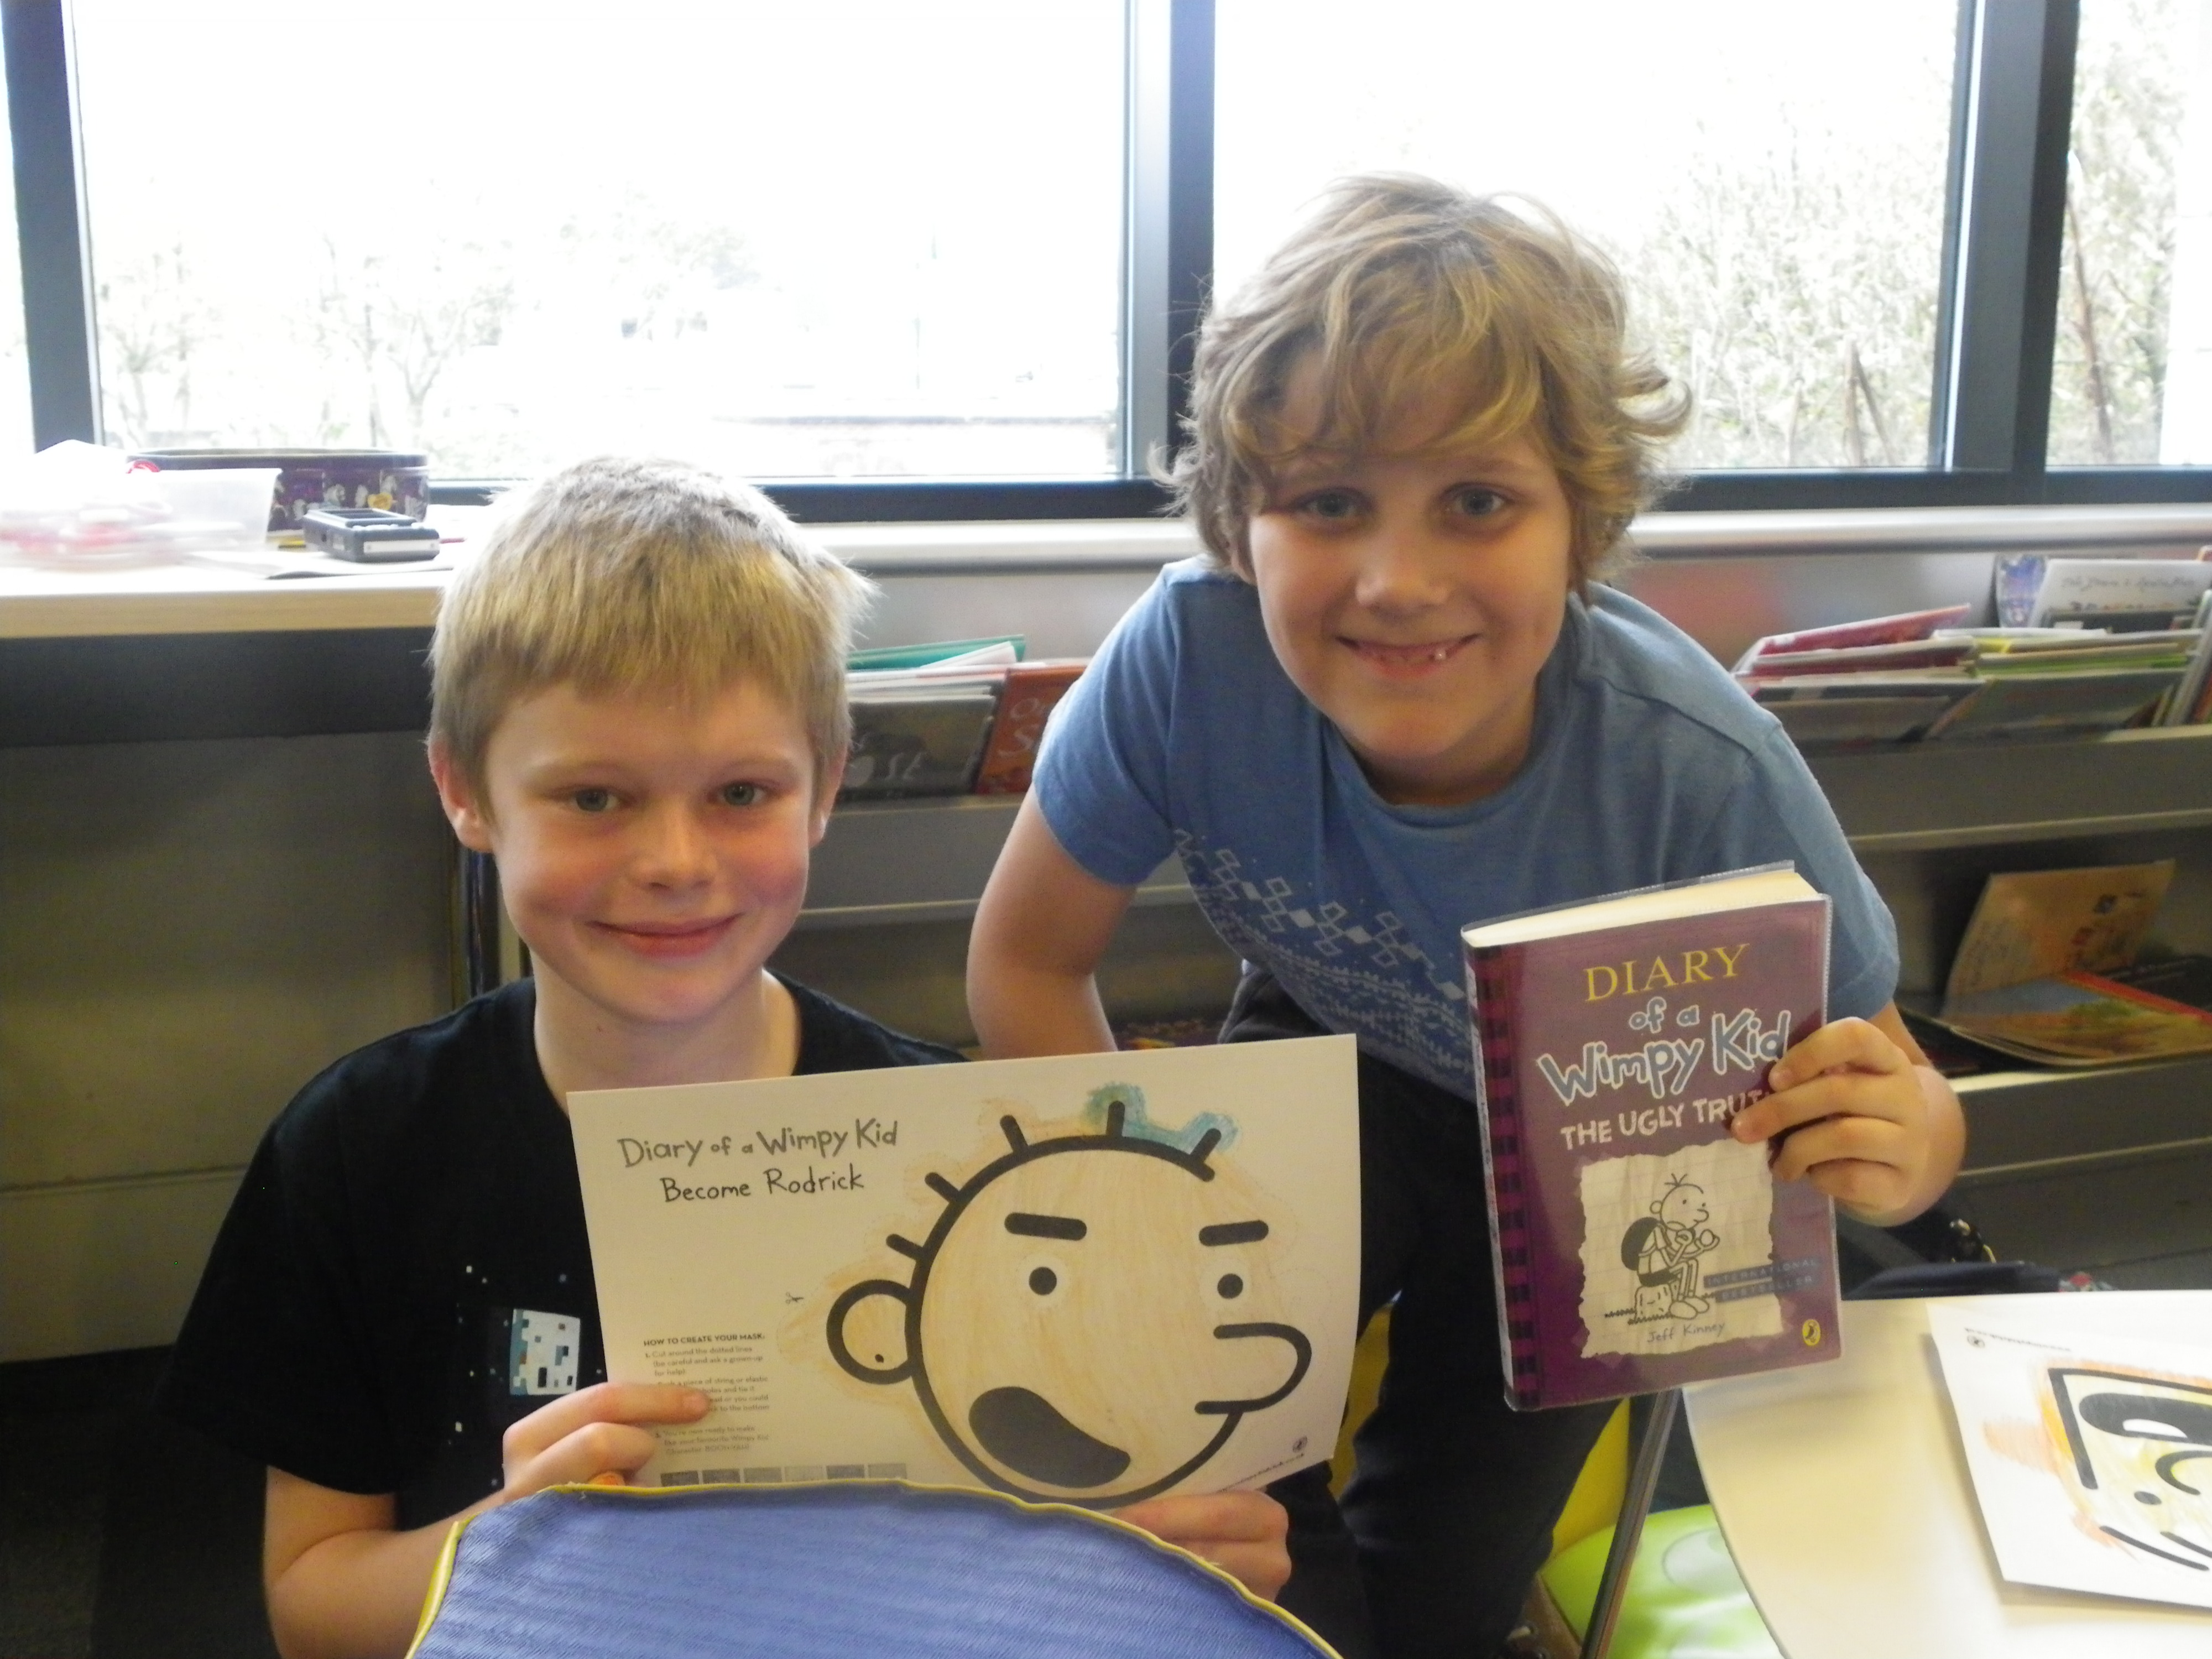 Home news stuck for something to do at half term halton borough council is having a wimpy kid week in its libraries why not dress up your child as their favourite solutioingenieria Gallery